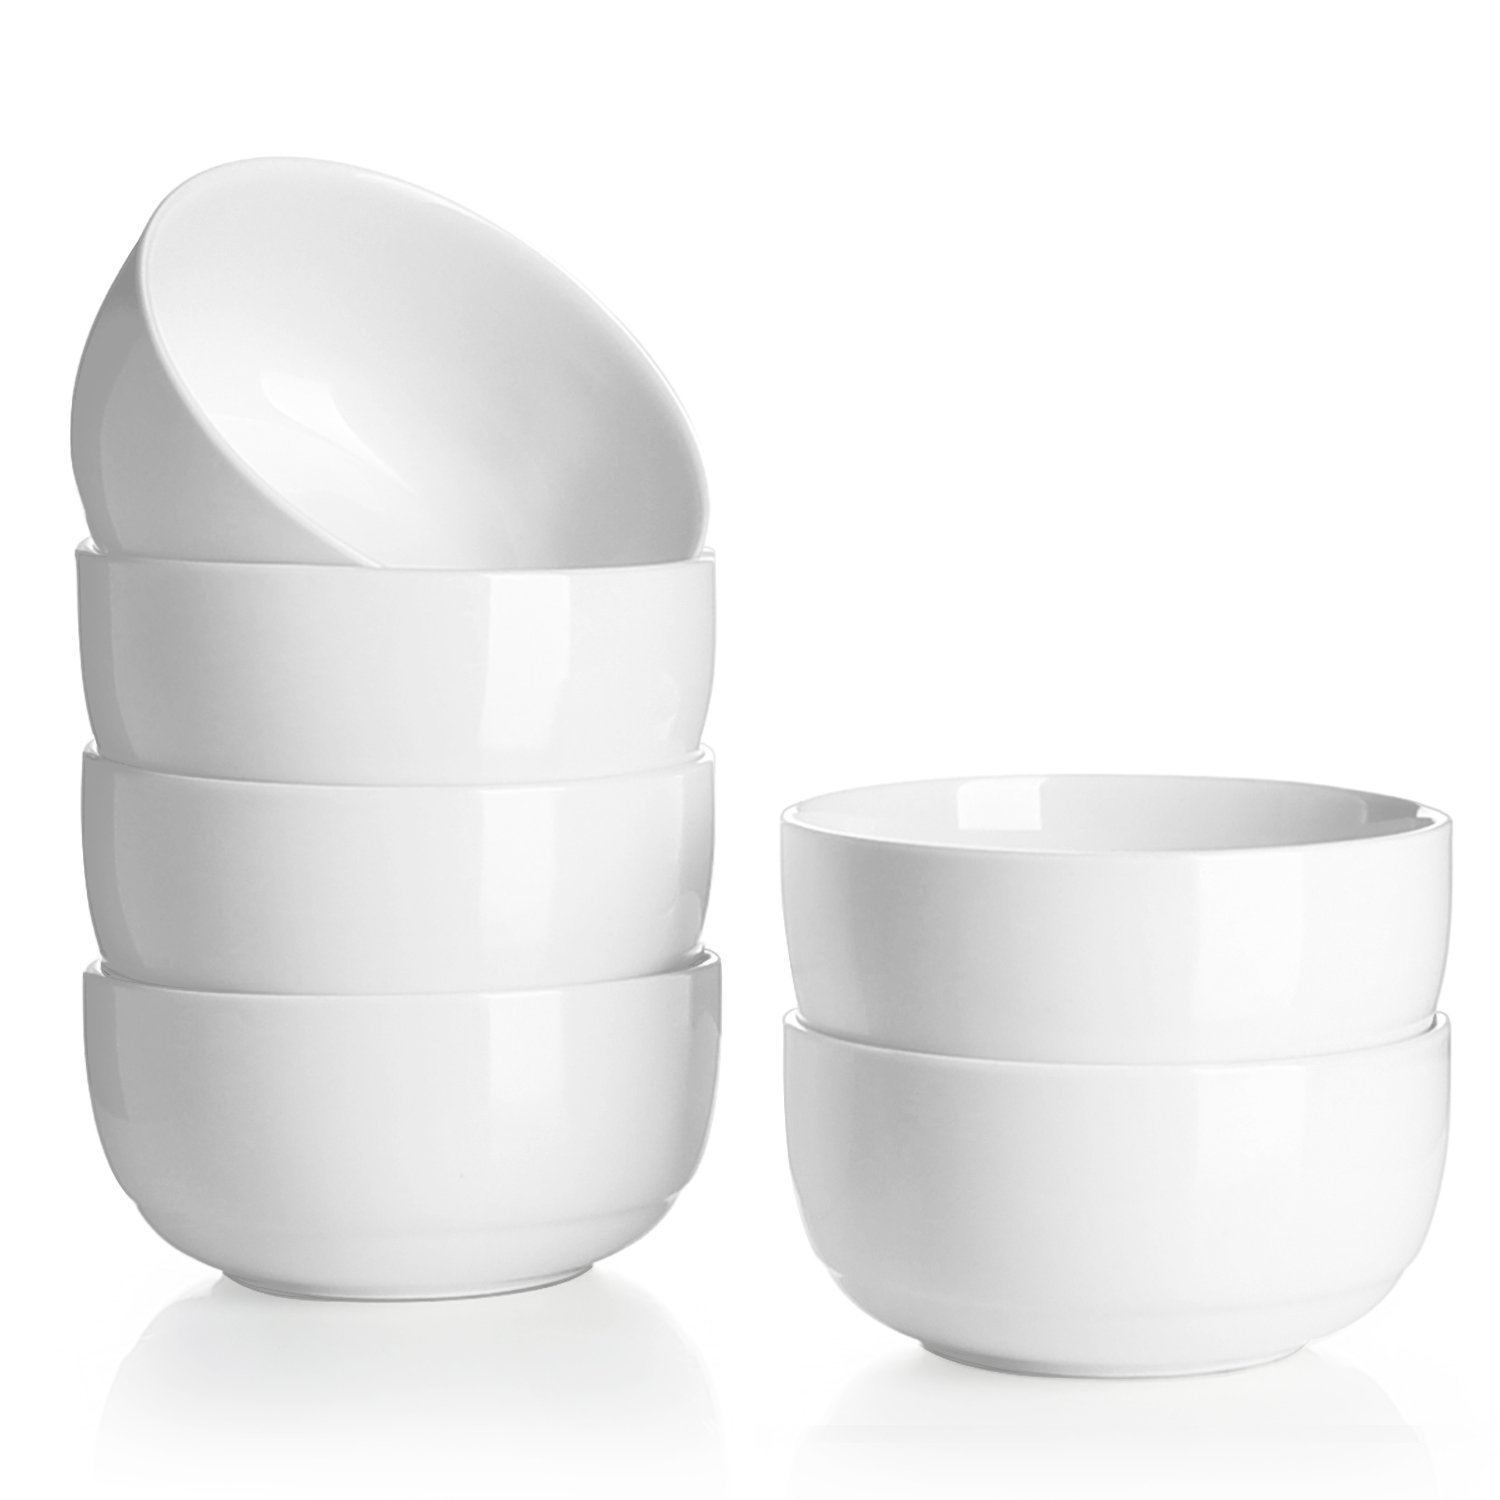 Teocera 10 Oz Porcelain Bowls - 4.25 inch Small White Bowl Set of 6, A Healthier Portion Size for Sauce Dip Serving, Cereal, Dessert, Snack, Rice, Ice cream, Fruit, Microwave Safe